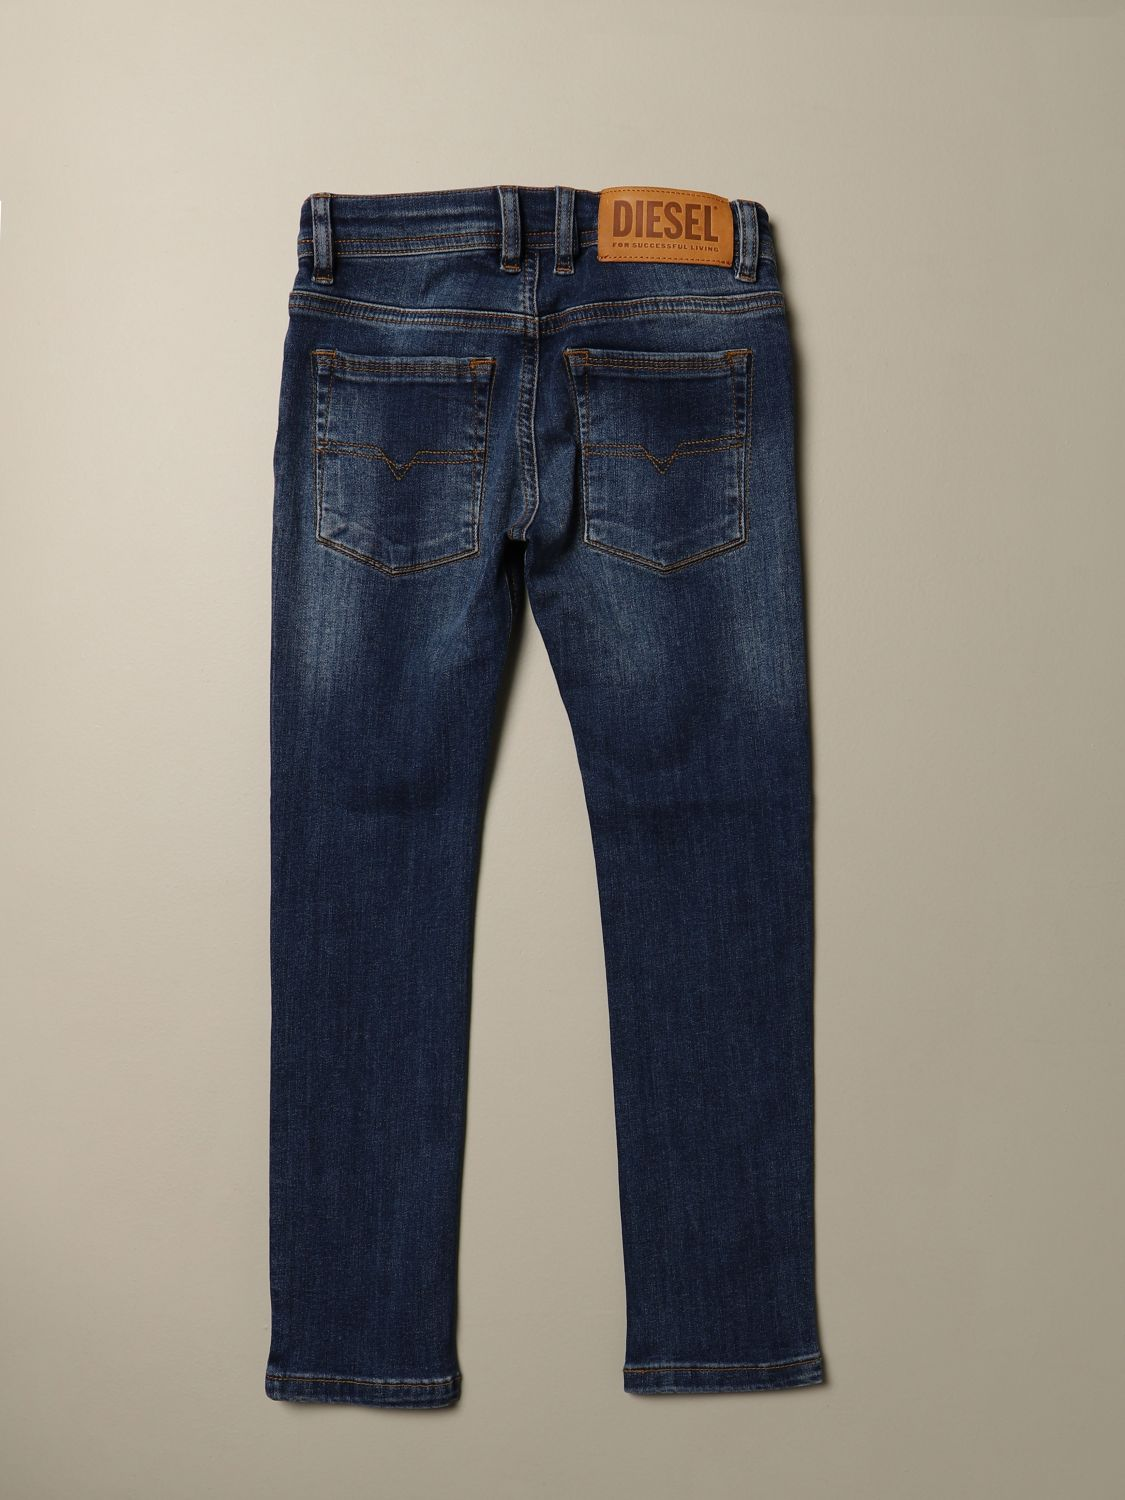 Jeans Diesel: Jeans Sleenker Diesel skinny fit in denim used denim 2